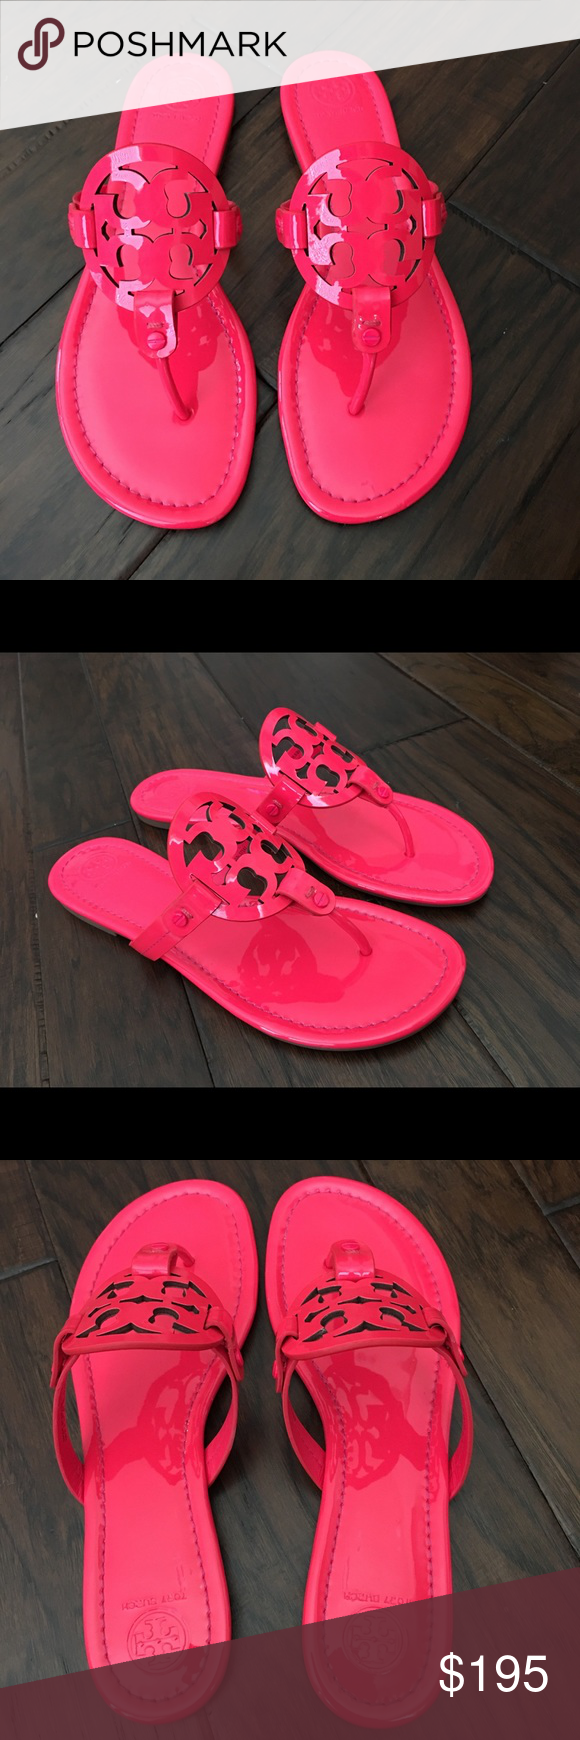 c5b21d96d89cb2 New Tory Burch Miller Fluorescent Fuchsia sandals Brand new with box Tory  Burch Miller patent leather sandals in fluorescent Fuchsia which is a bright  neon ...